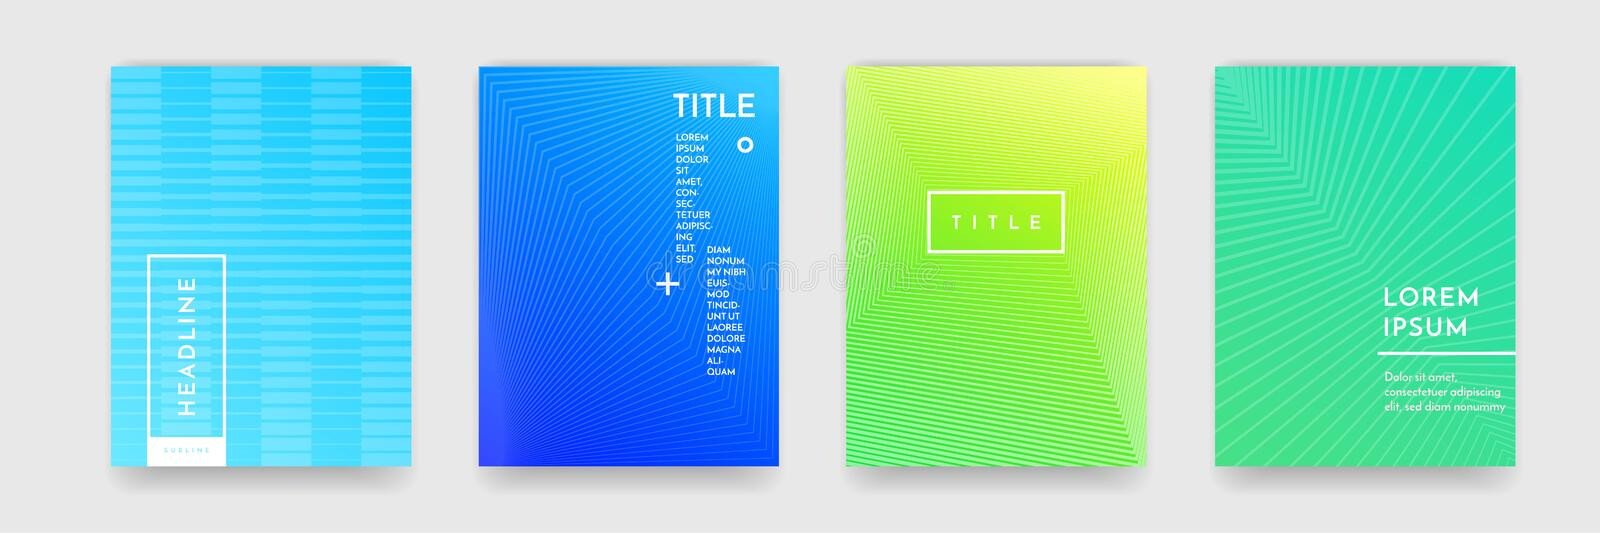 Abstract gradient color pattern texture for book cover template vector set royalty free illustration